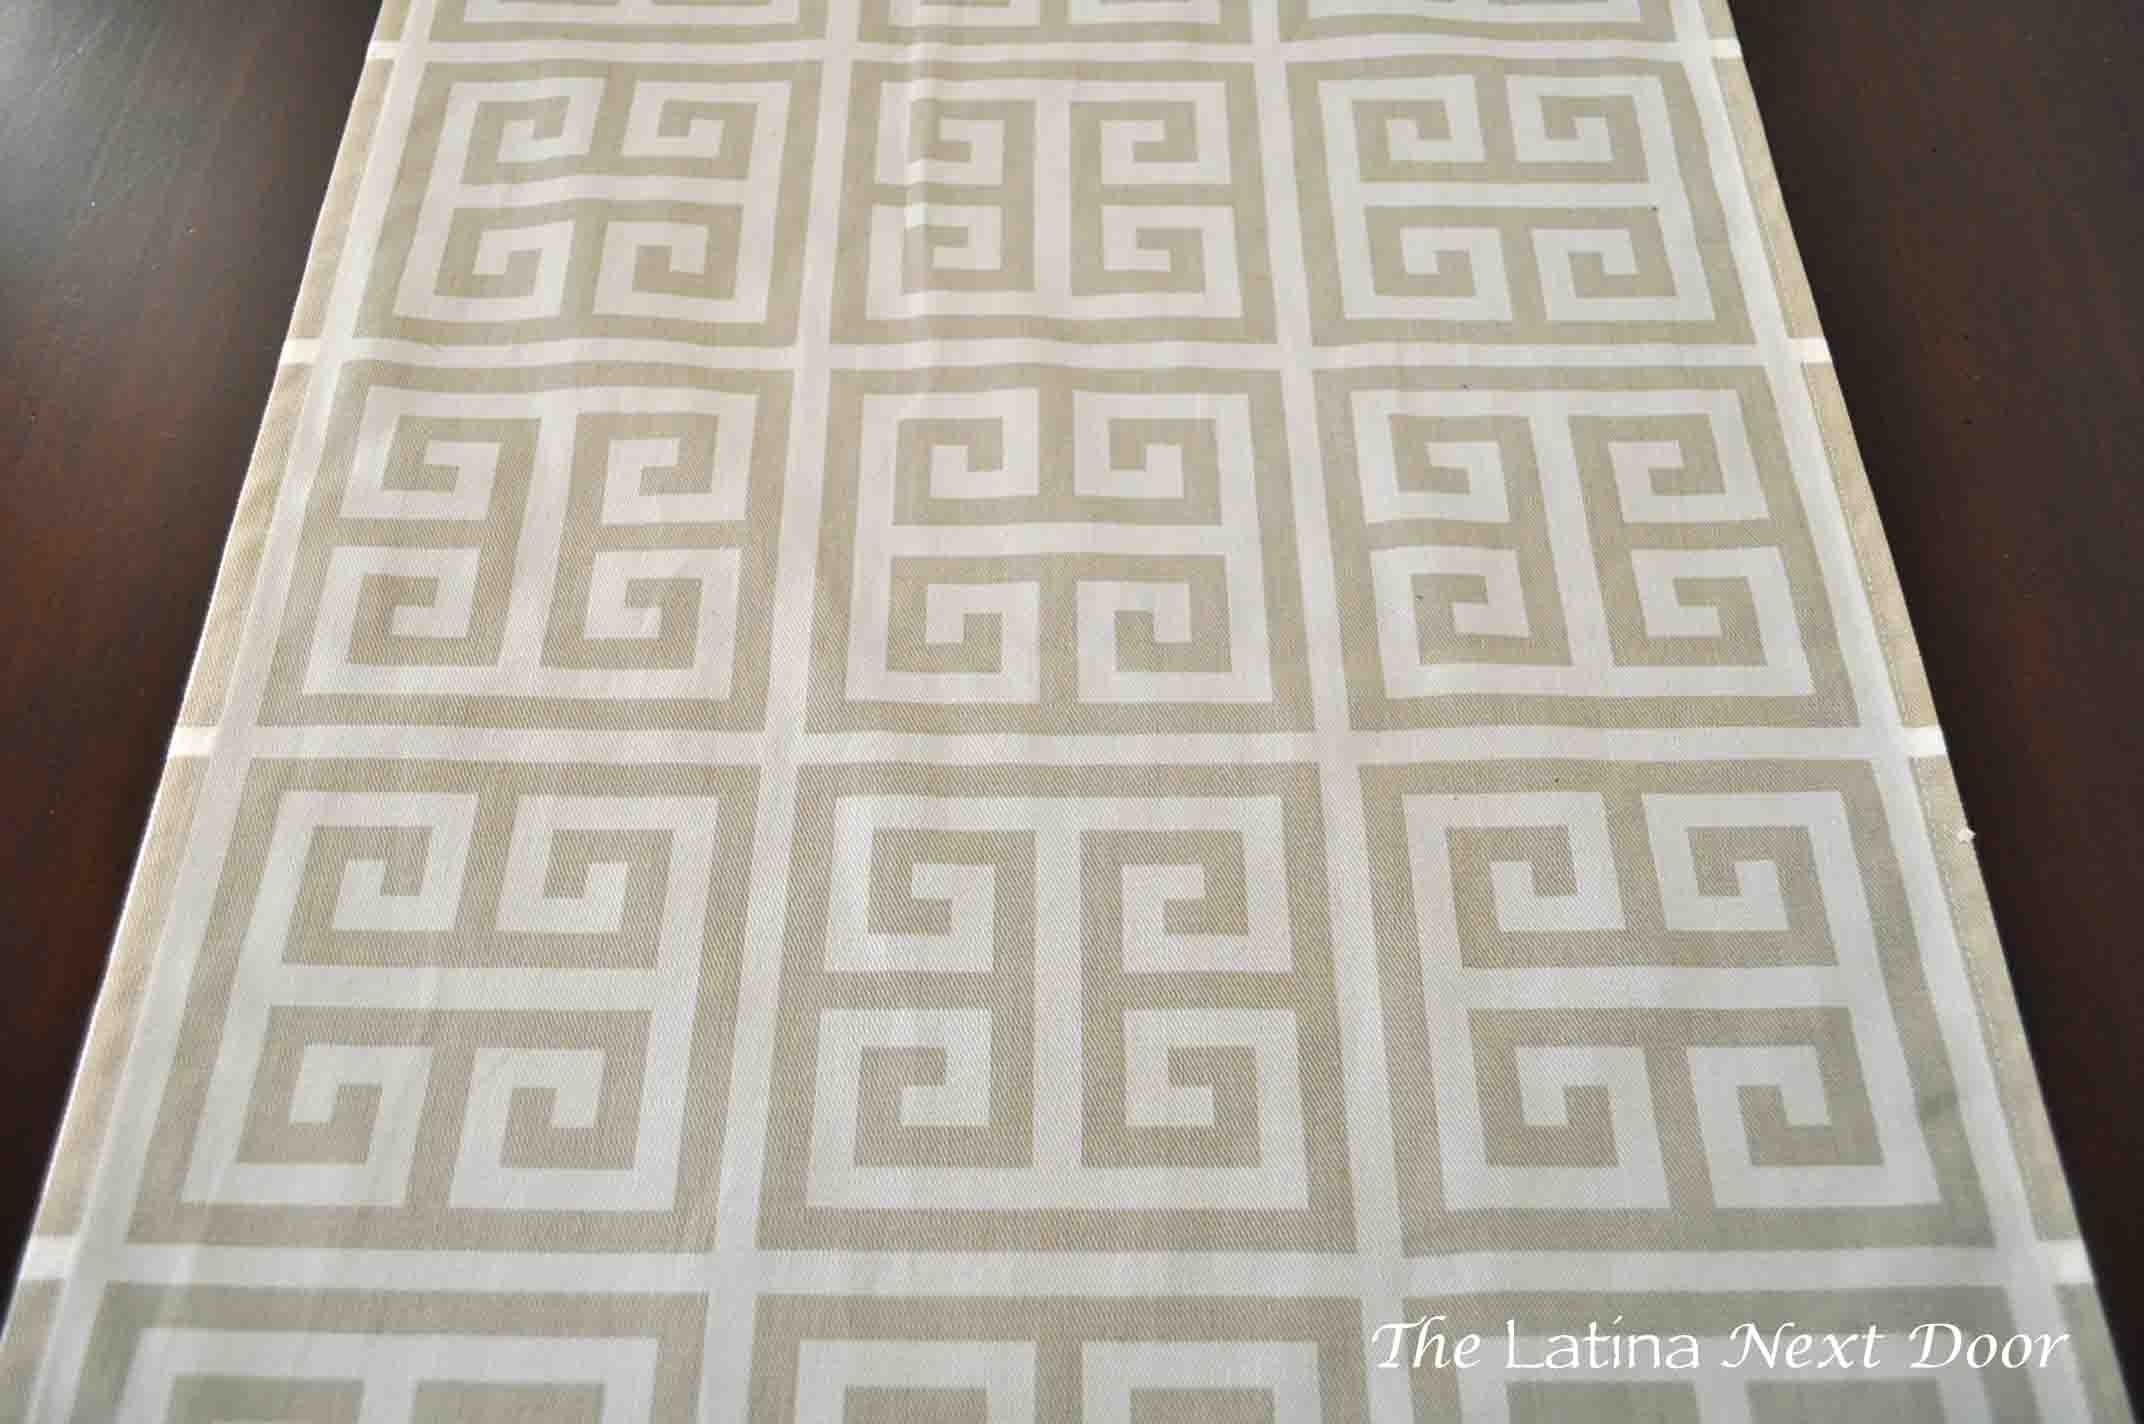 How to sew a table runner - How To Sew A Table Runner 7 How To Sew A Table Runner